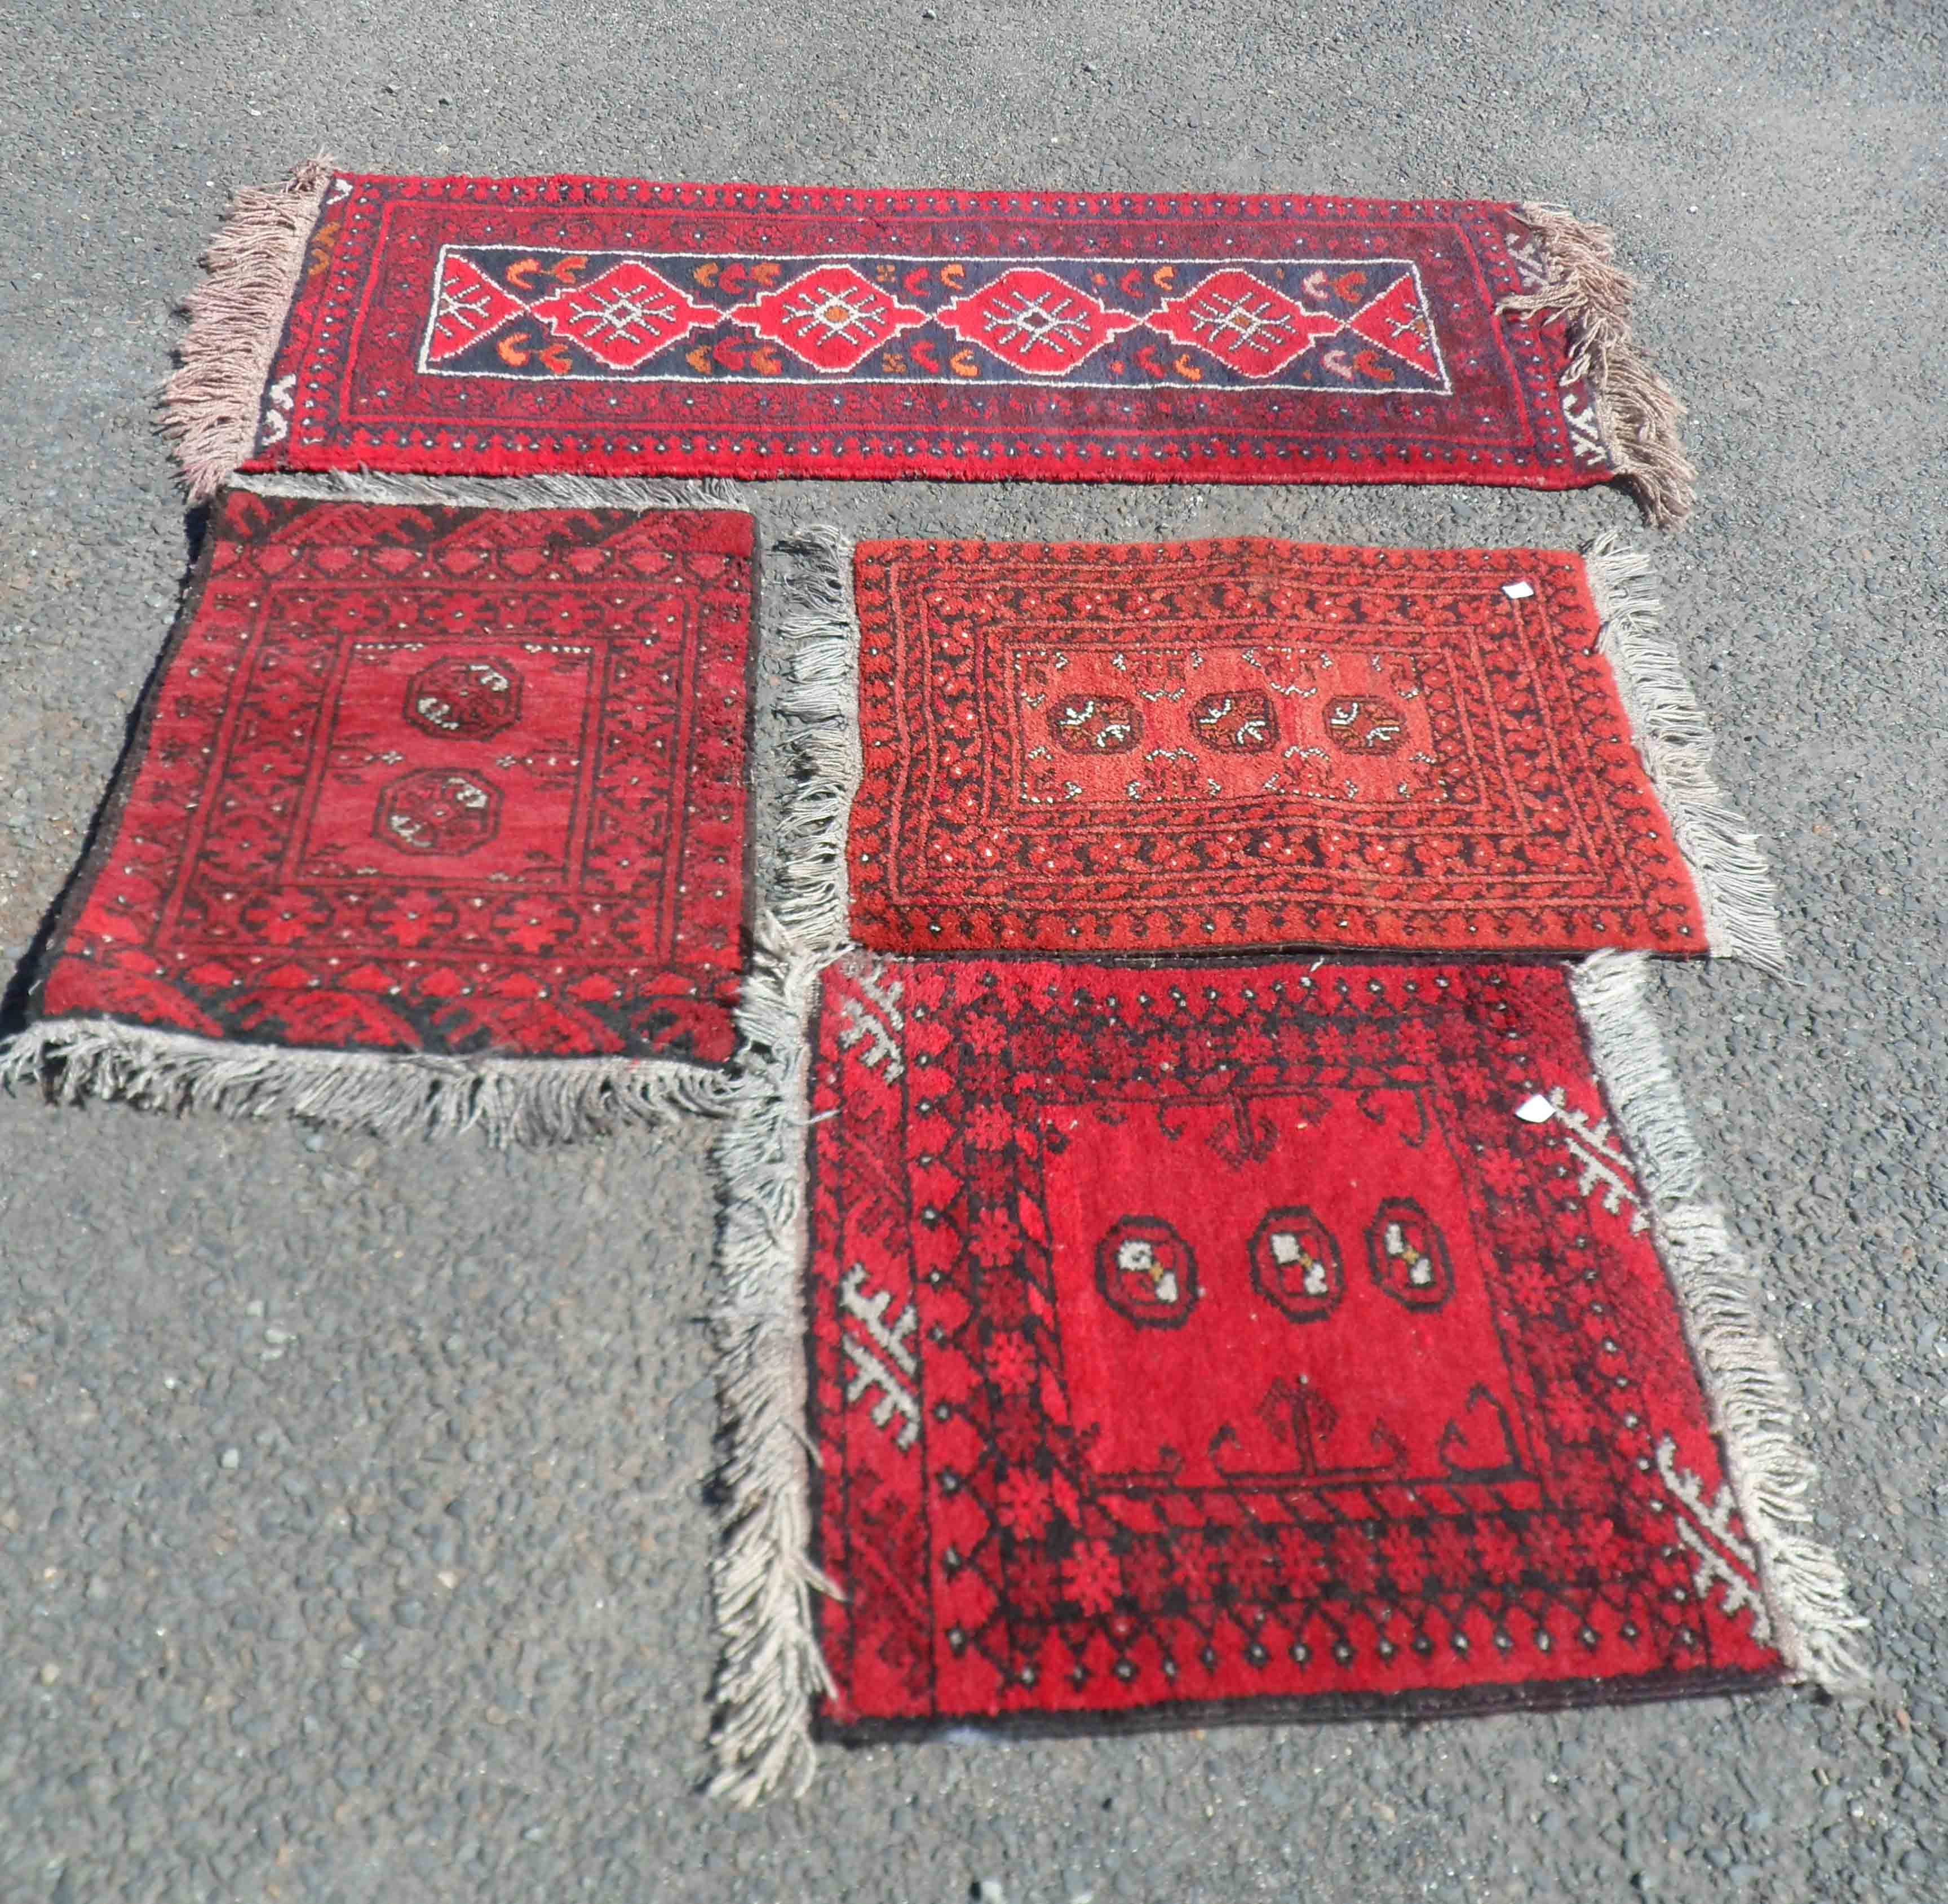 Three Afghan small handmade mats with central guls - sold with a similar North Indian runner mat